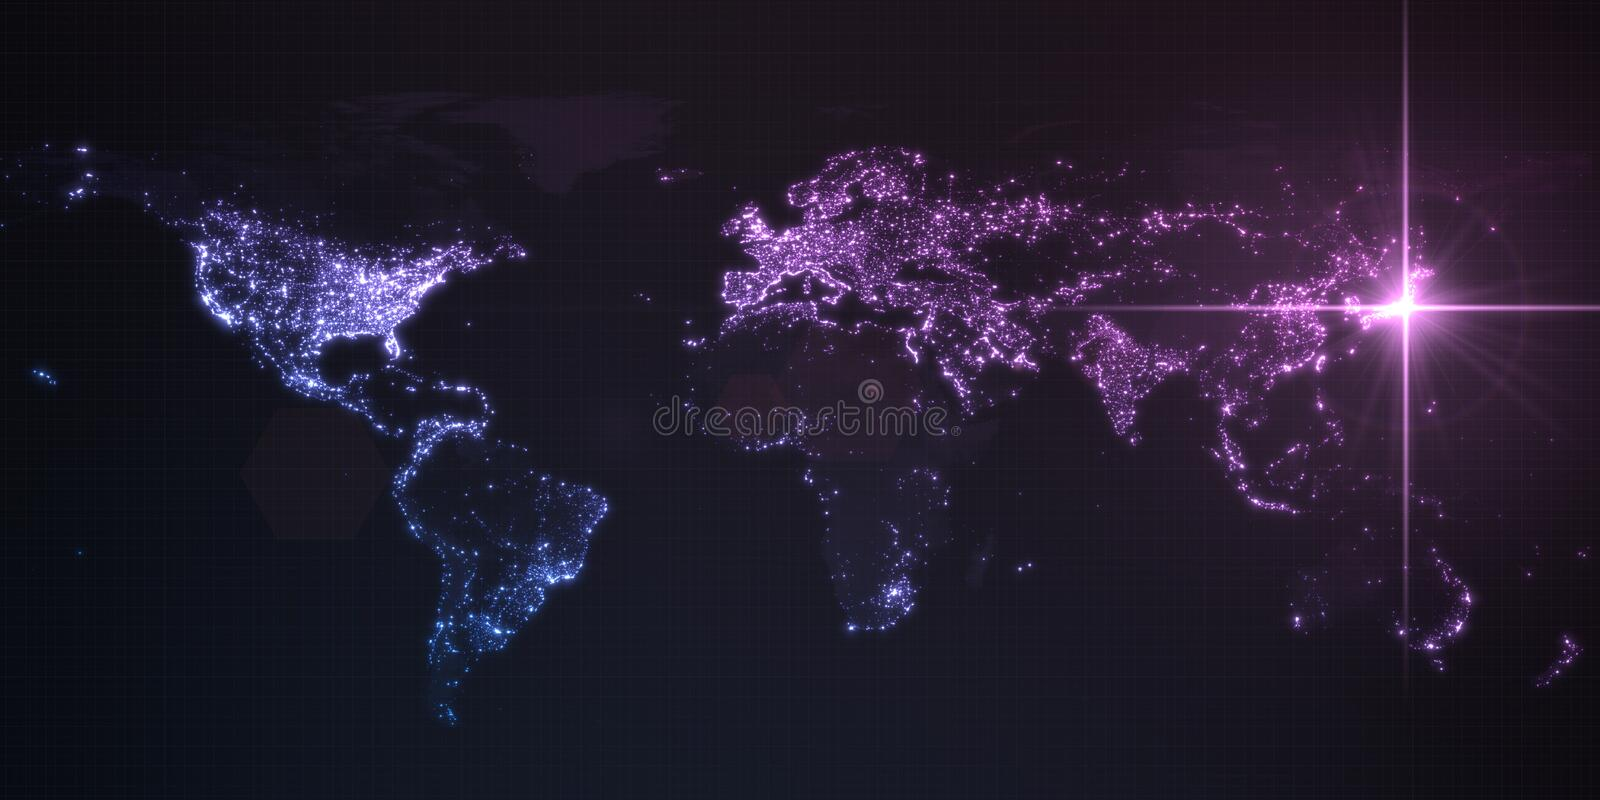 Power of japan, energy beam on tokyo. dark map with illuminated cities and human density areas. 3d illustration. Power of japan, energy beam on tokyo. dark map stock illustration